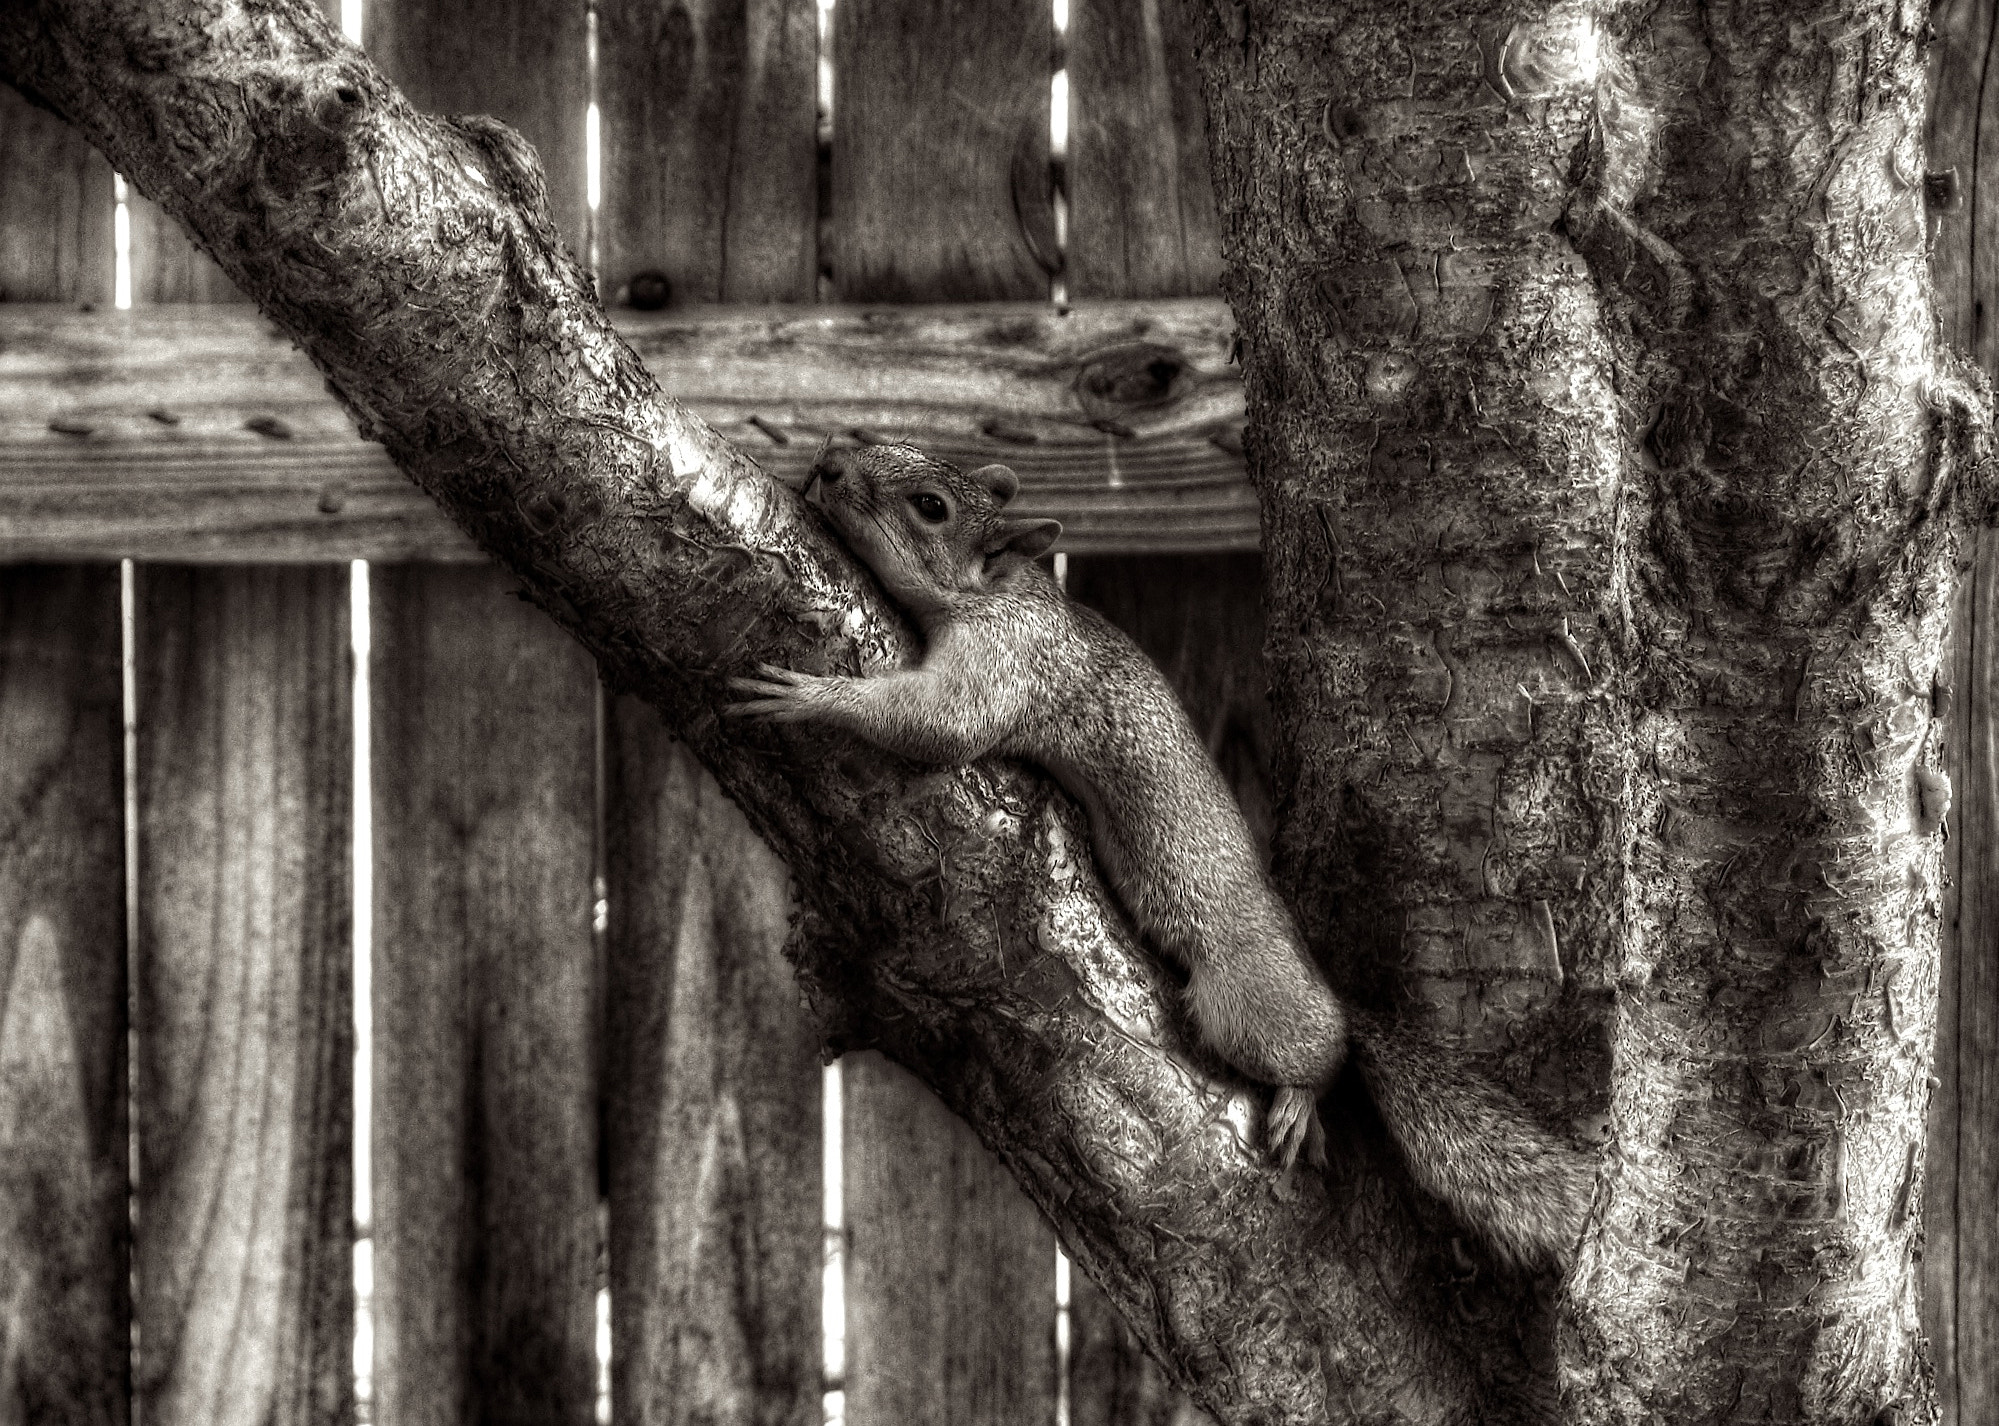 Photograph Squirrel  in Cherry Tree by Rick  W on 500px